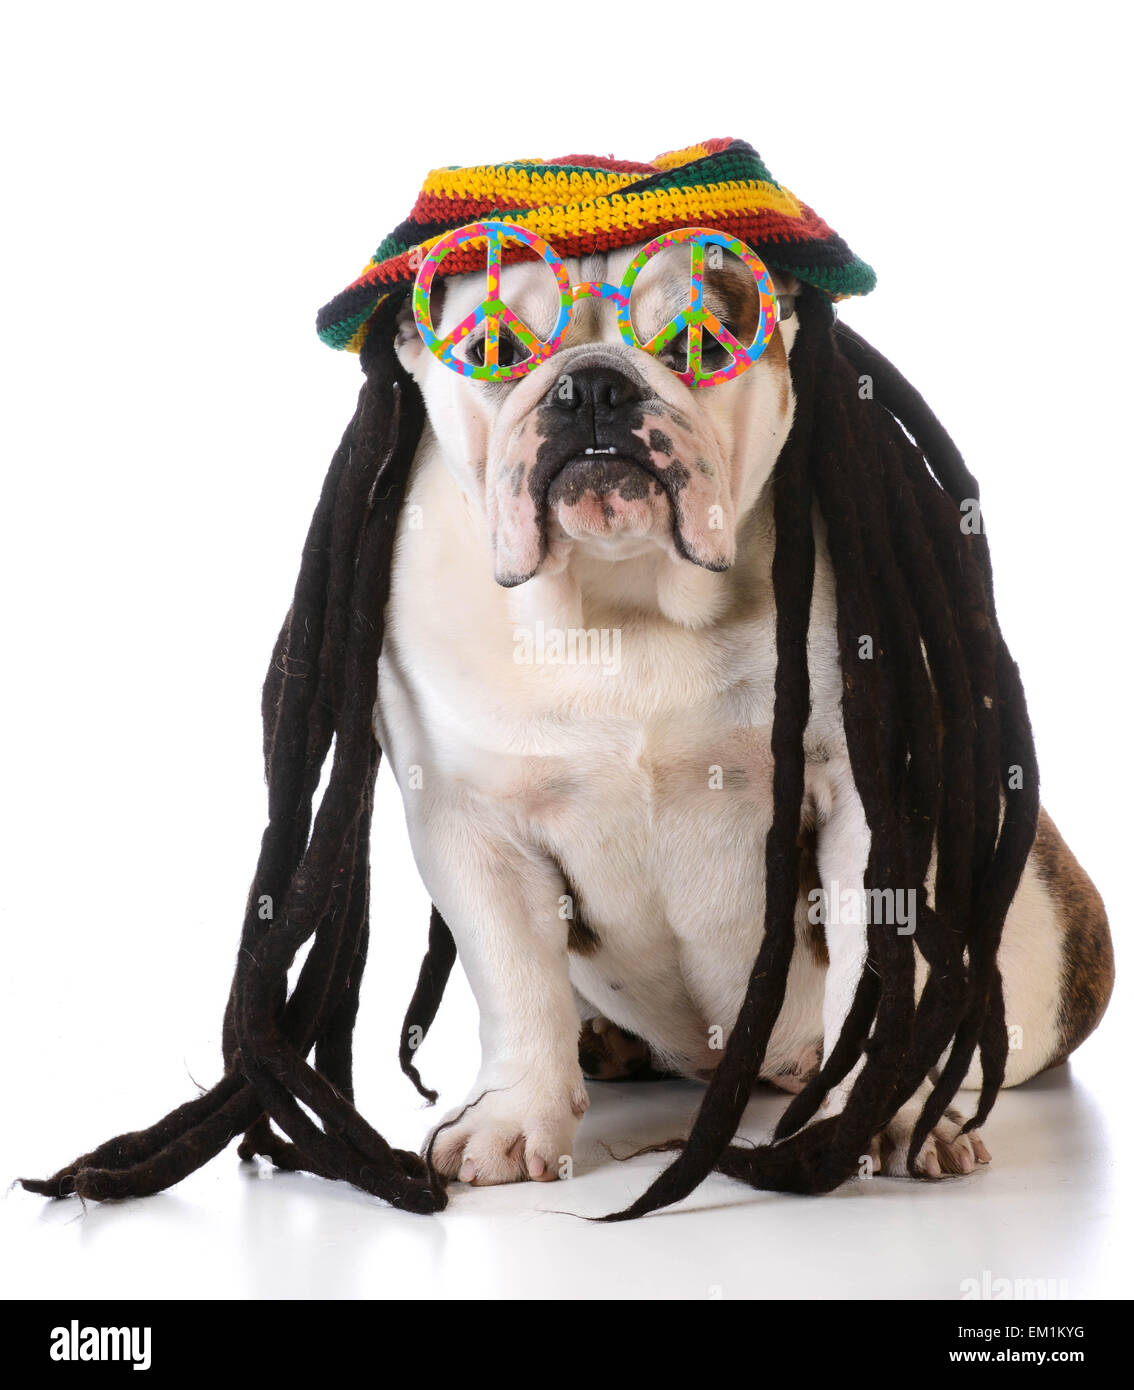 funny dog with dreadlock wig and peace glasses on white background - Stock Image